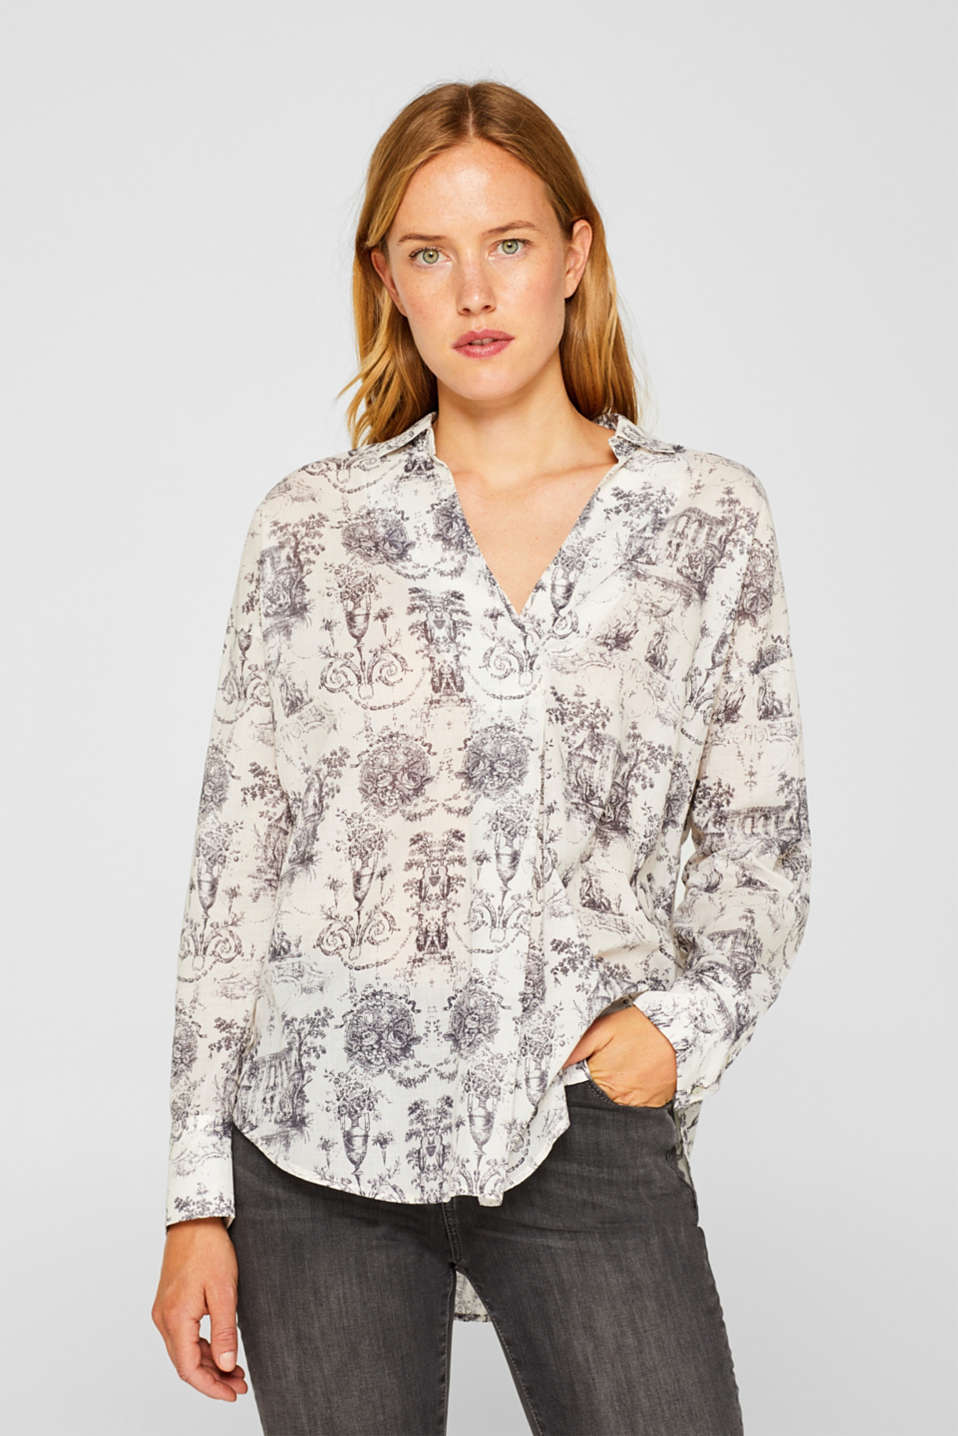 Esprit - Shirt blouse with a print, 100% cotton